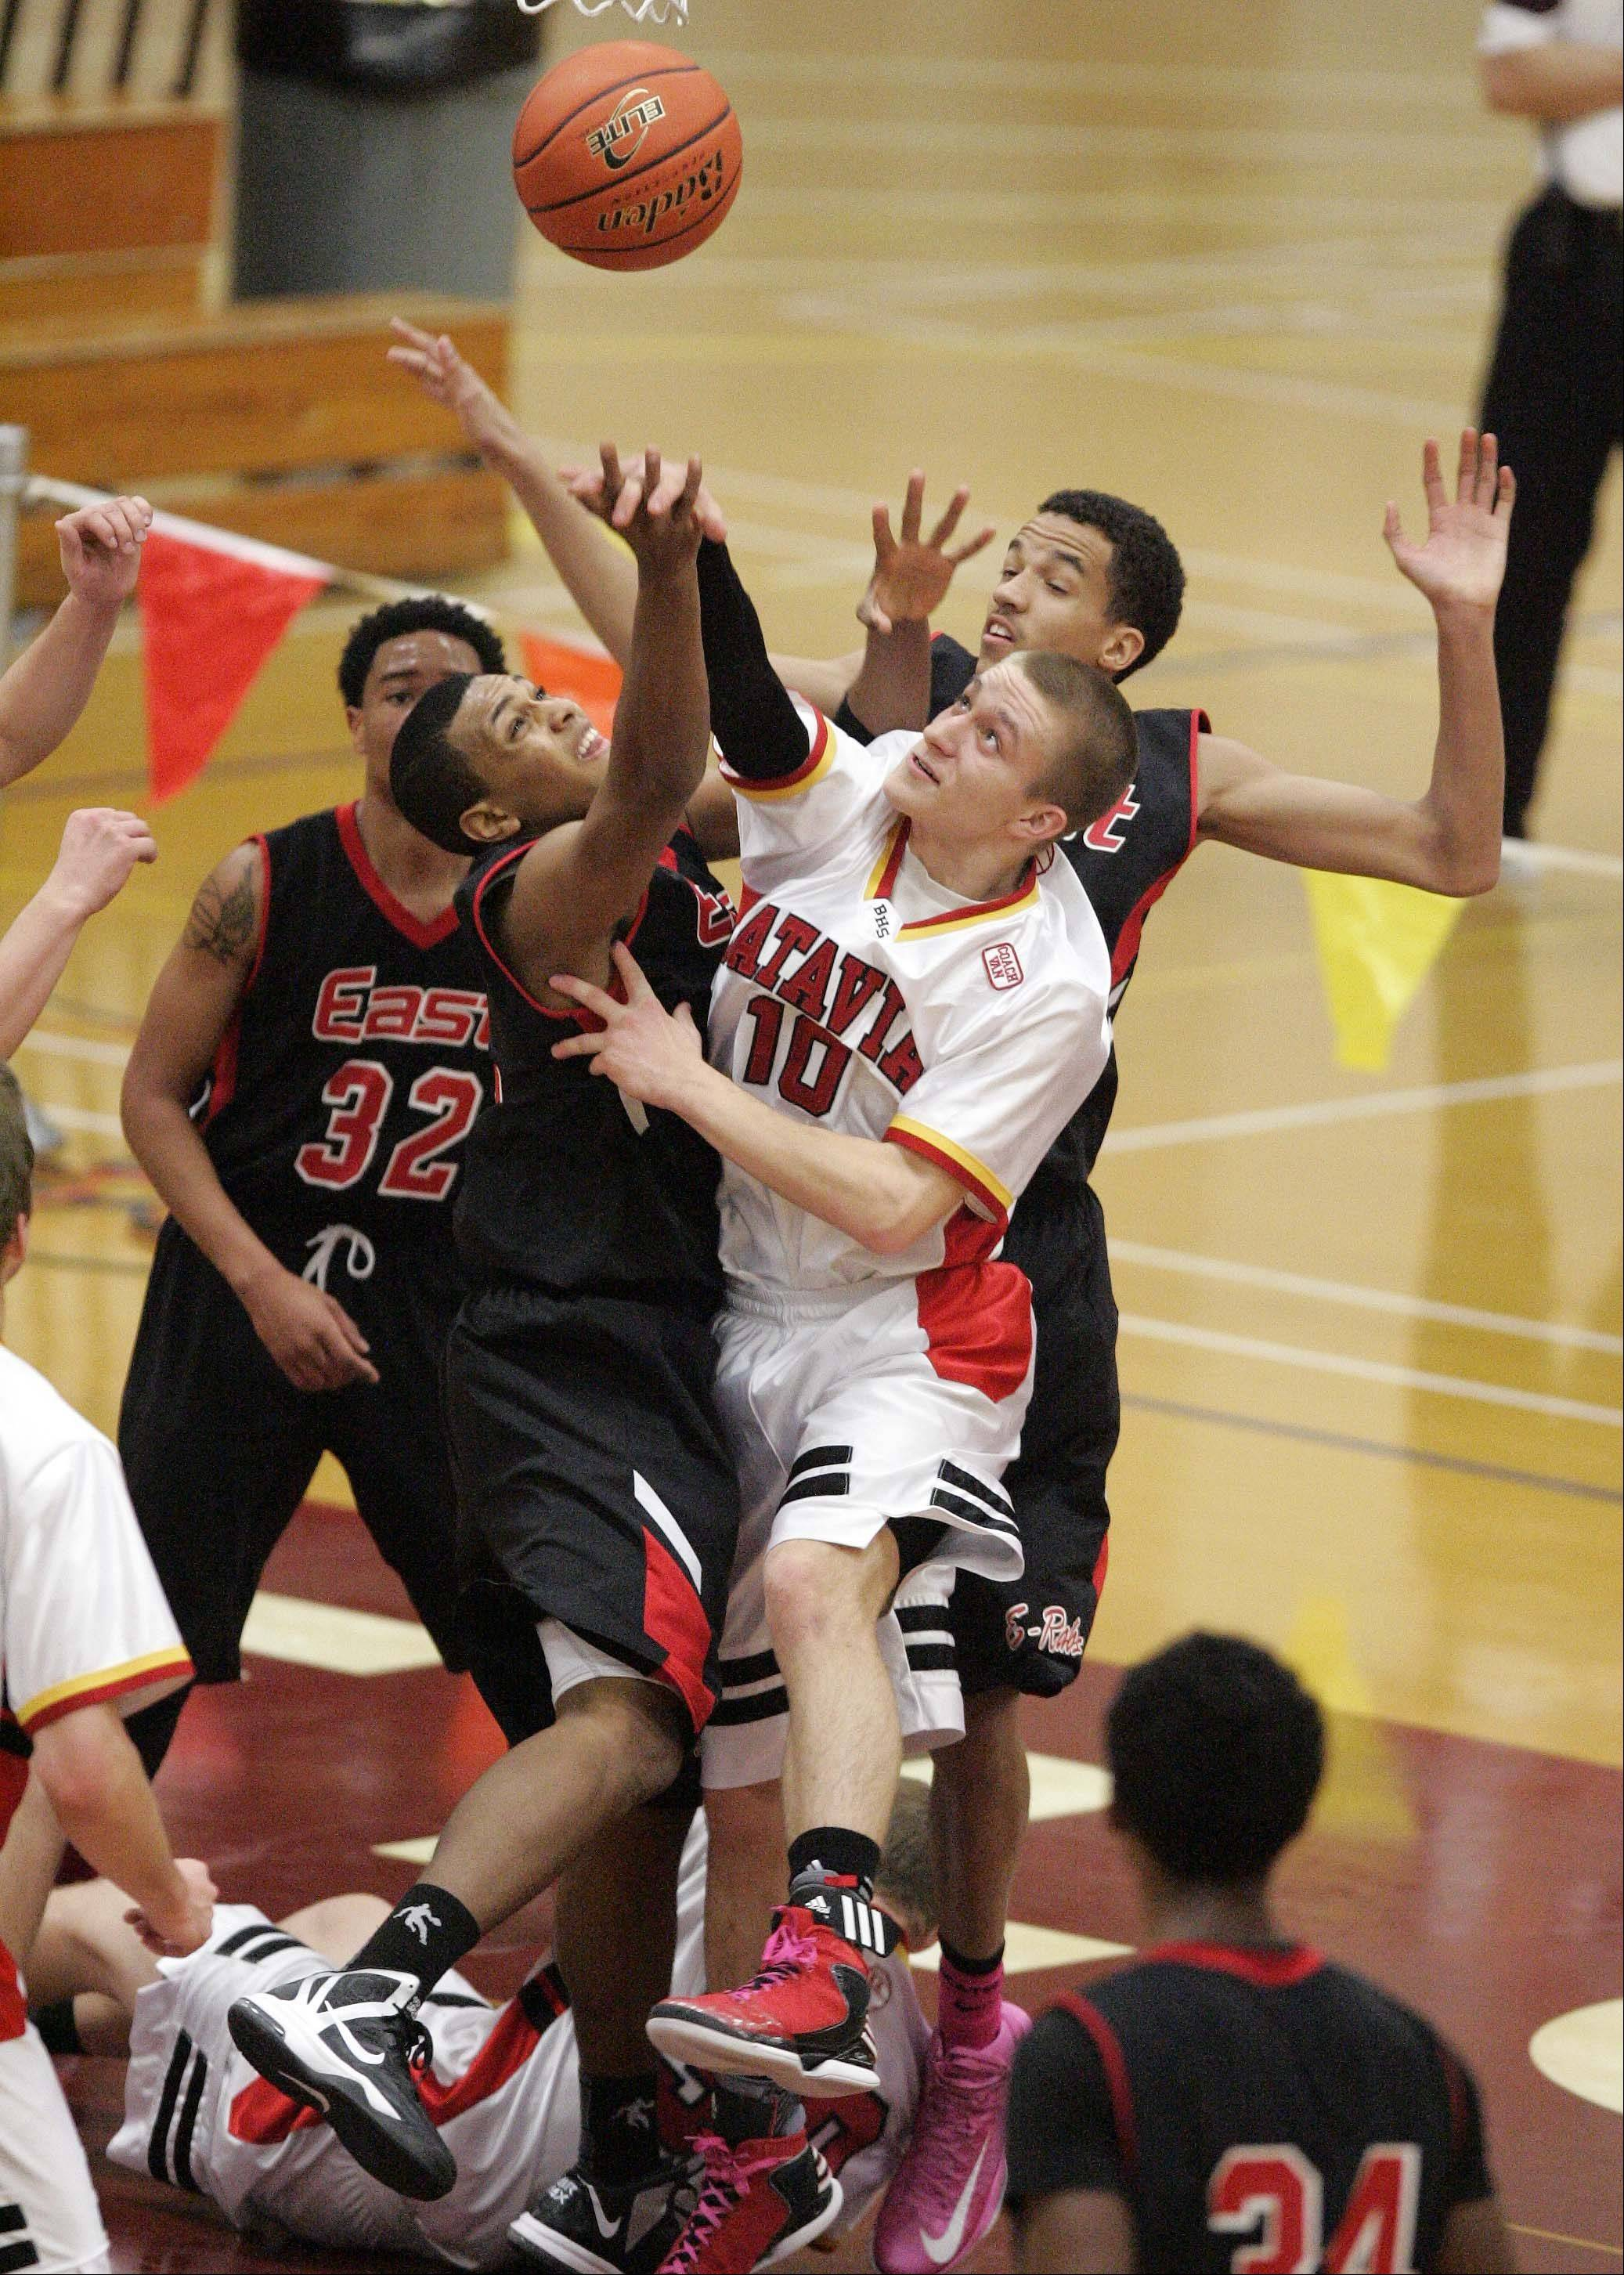 Batavia guard Mike Rueffer (10) knocks a rebound away from Rockford East at the 38th Annual Elgin Boys Holiday Basketball Tournament Thursday December 27, 2012.